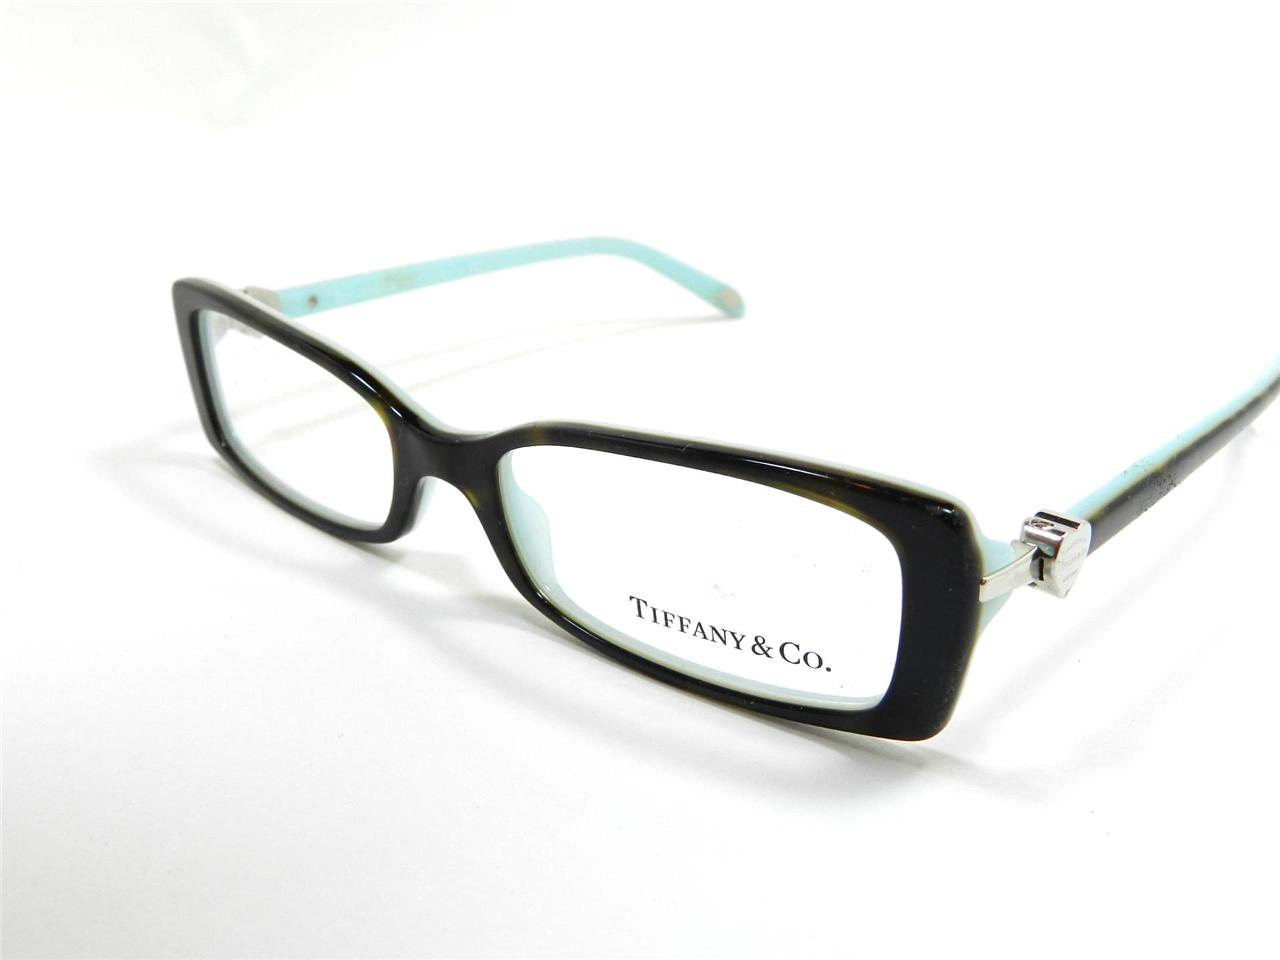 Glasses Frames Tiffany : TIFFANY & CO. EYEGLASSES 2035 8134 OPTICAL FRAME NEW ...